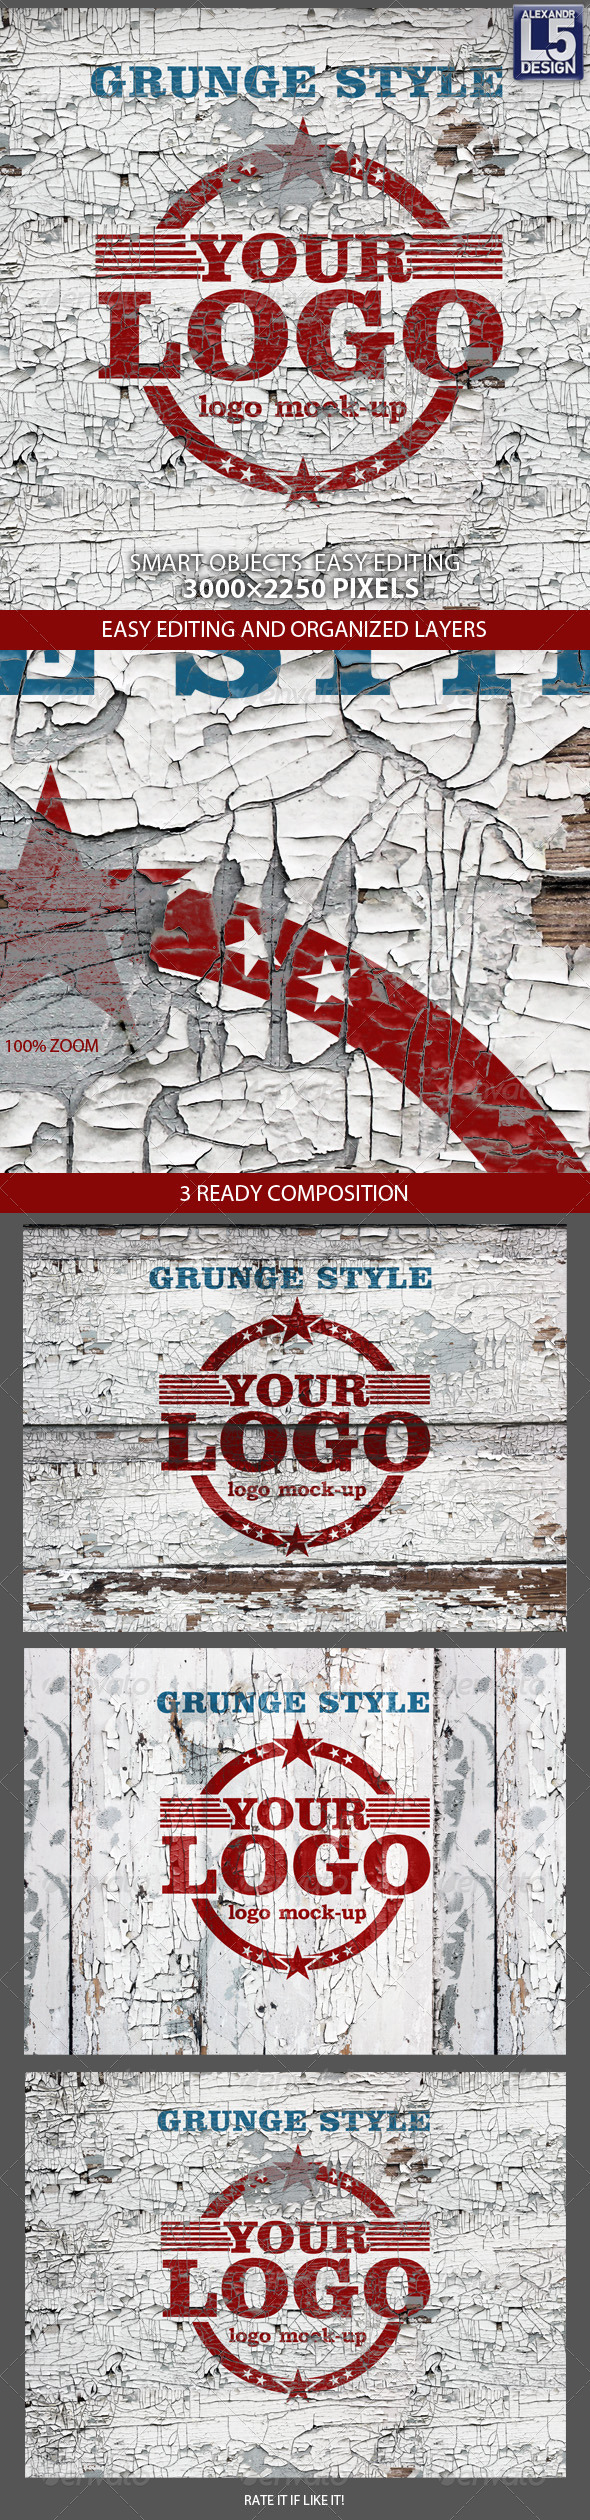 Grunge Wall Logo Mock-up - Logo Product Mock-Ups